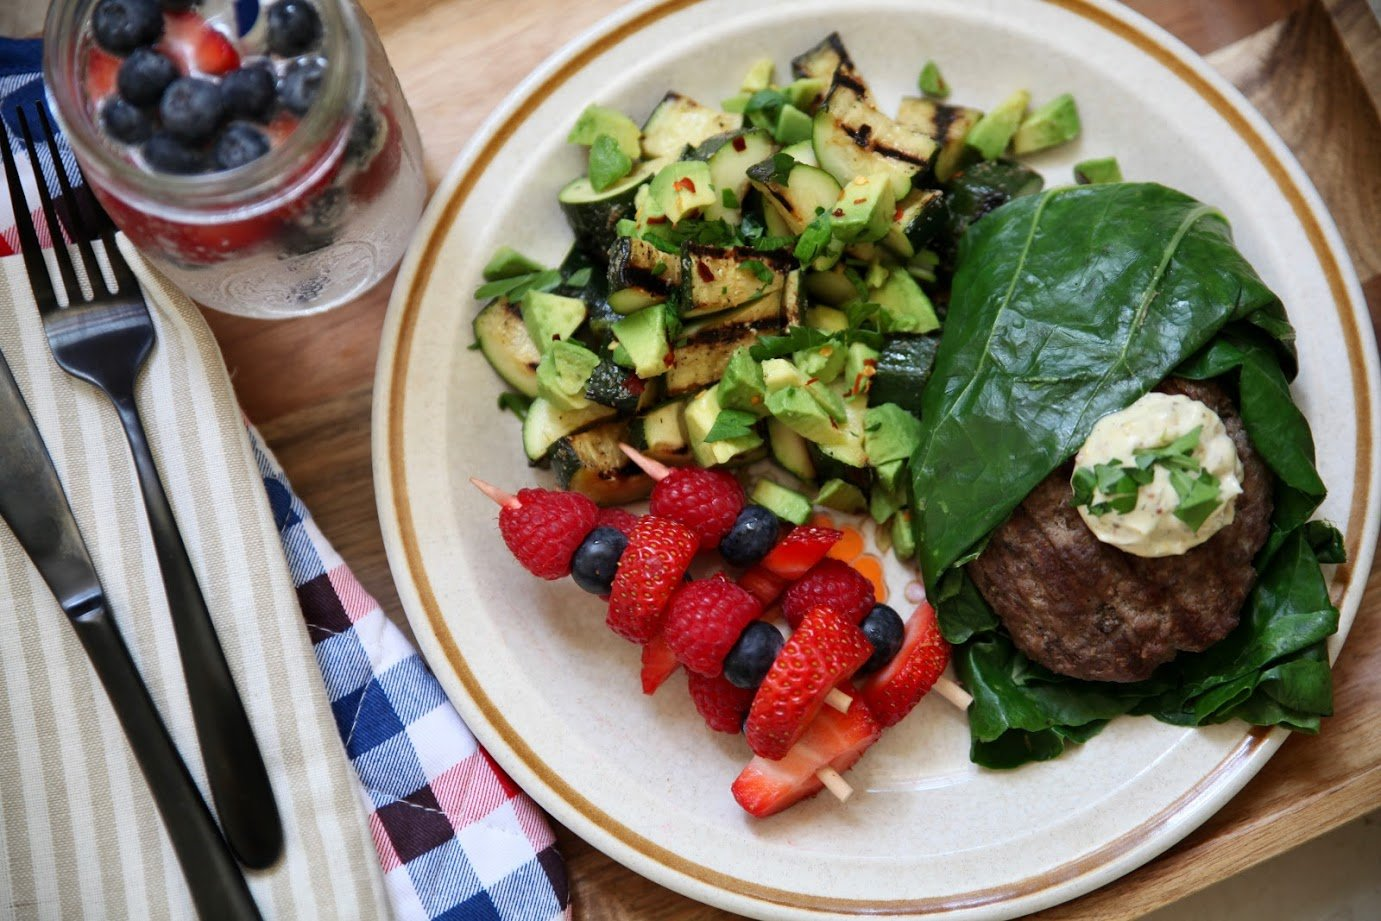 Burgers Wrapped in Swiss Chard with Zucchini Salad & Fruit Kabobs